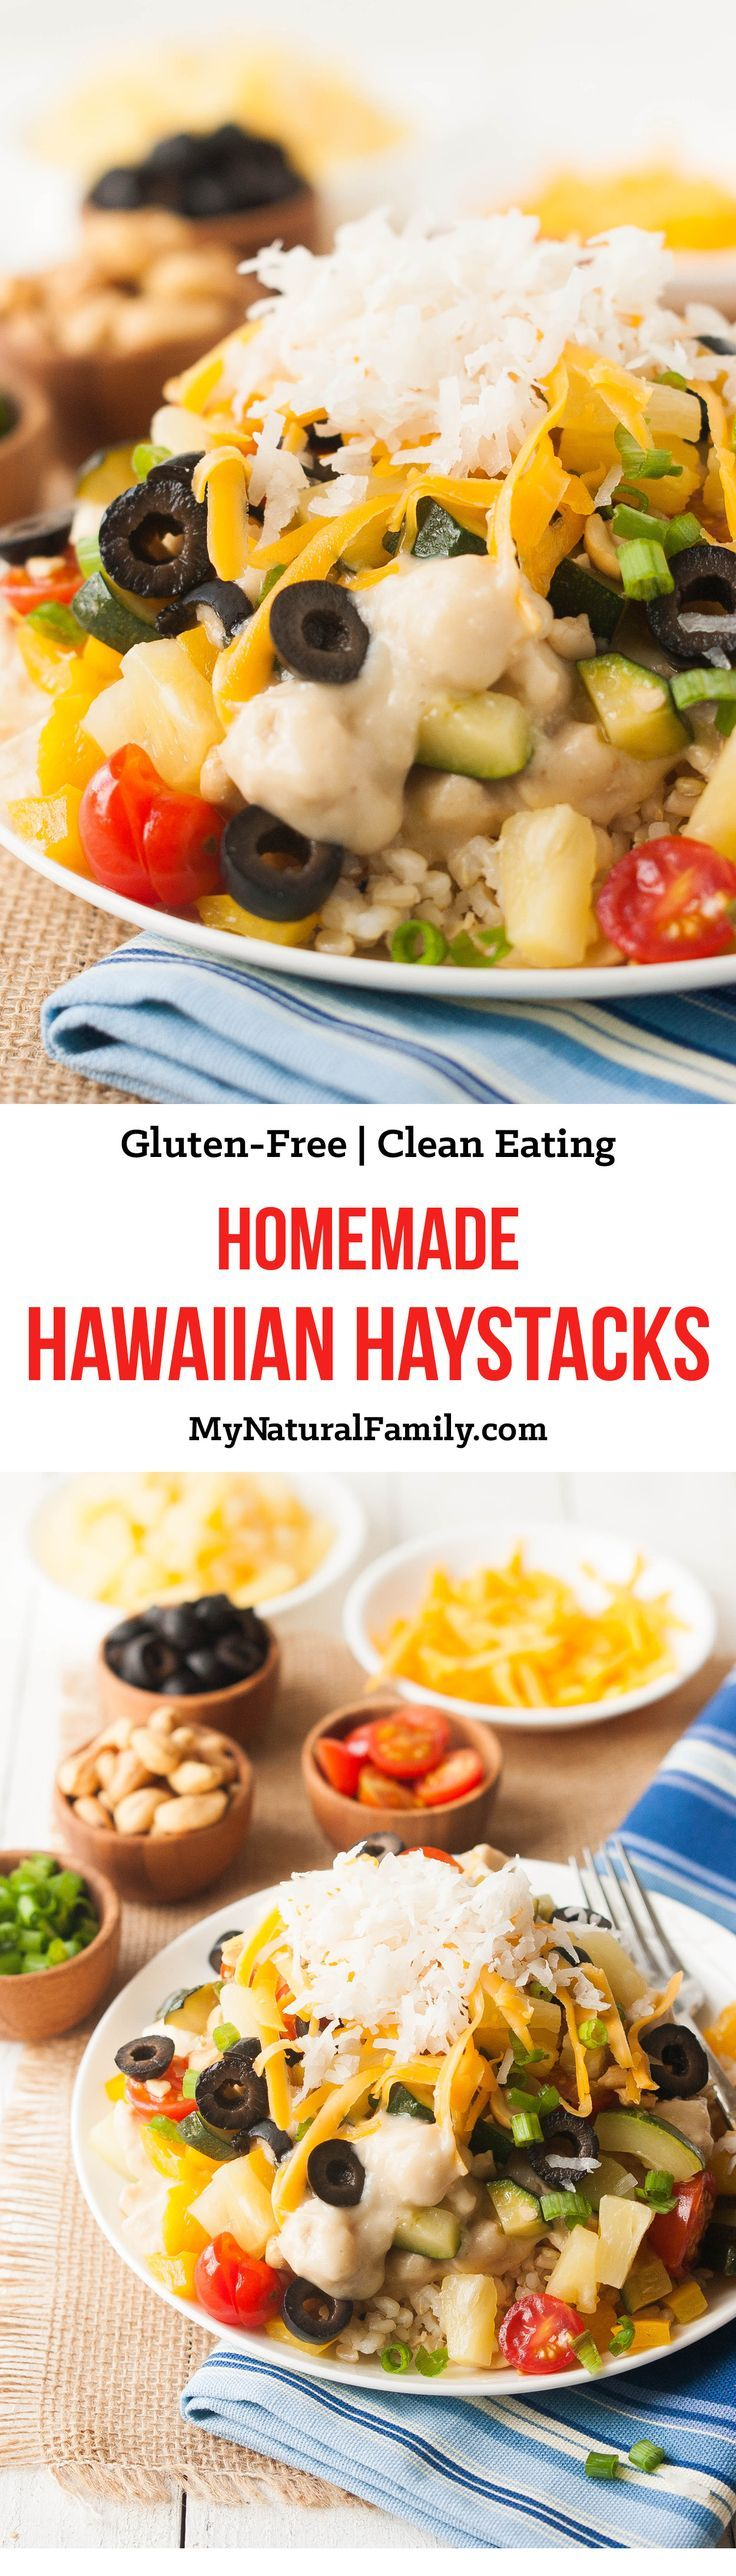 Homemade Hawaiian Haystacks Recipe {Gluten-Free, Clean Eating} - the ...